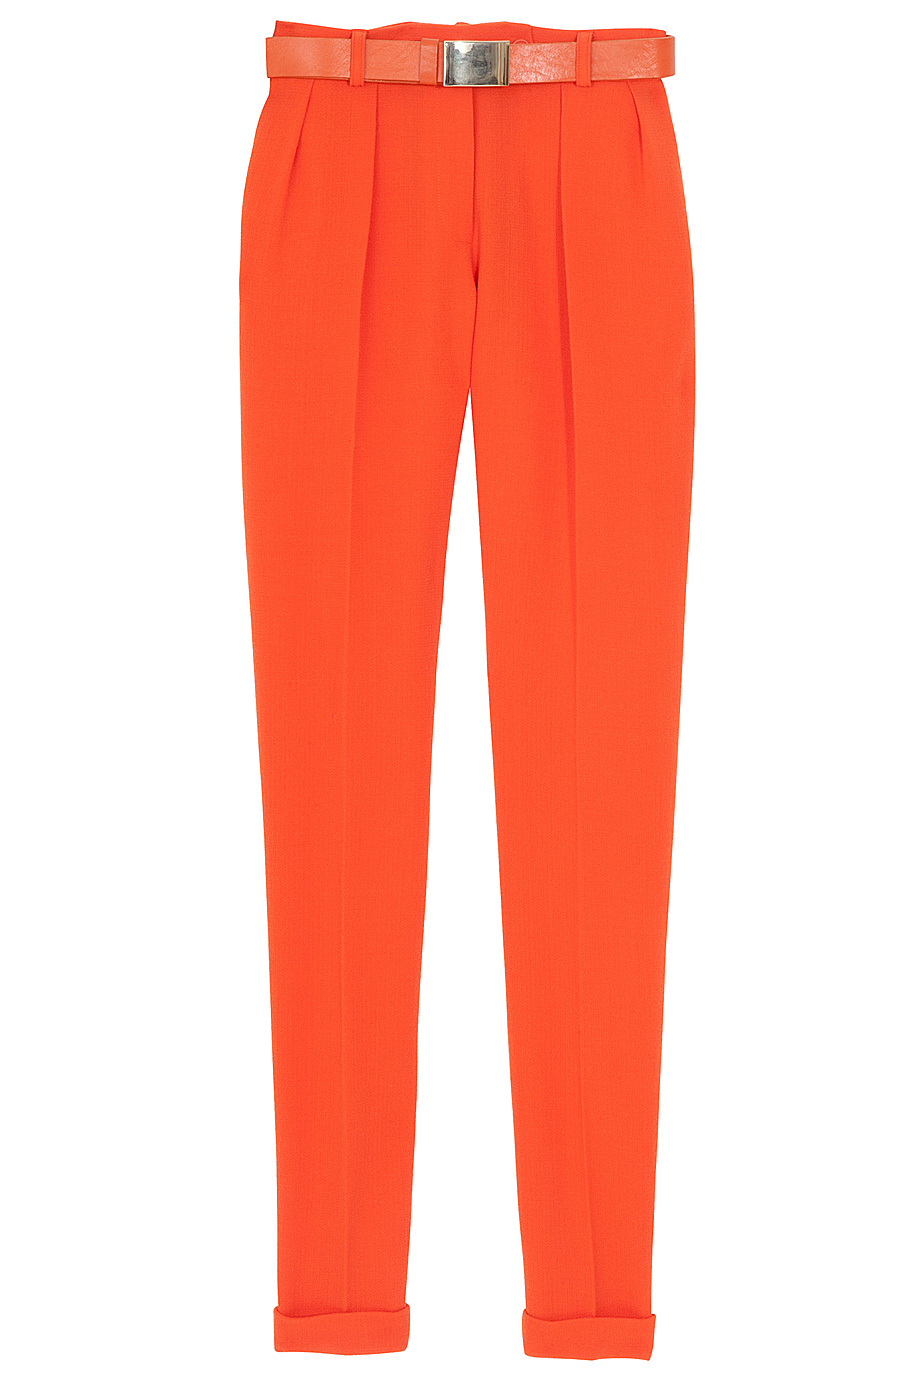 pants Suit clipart pant pencil and in color suit jpg